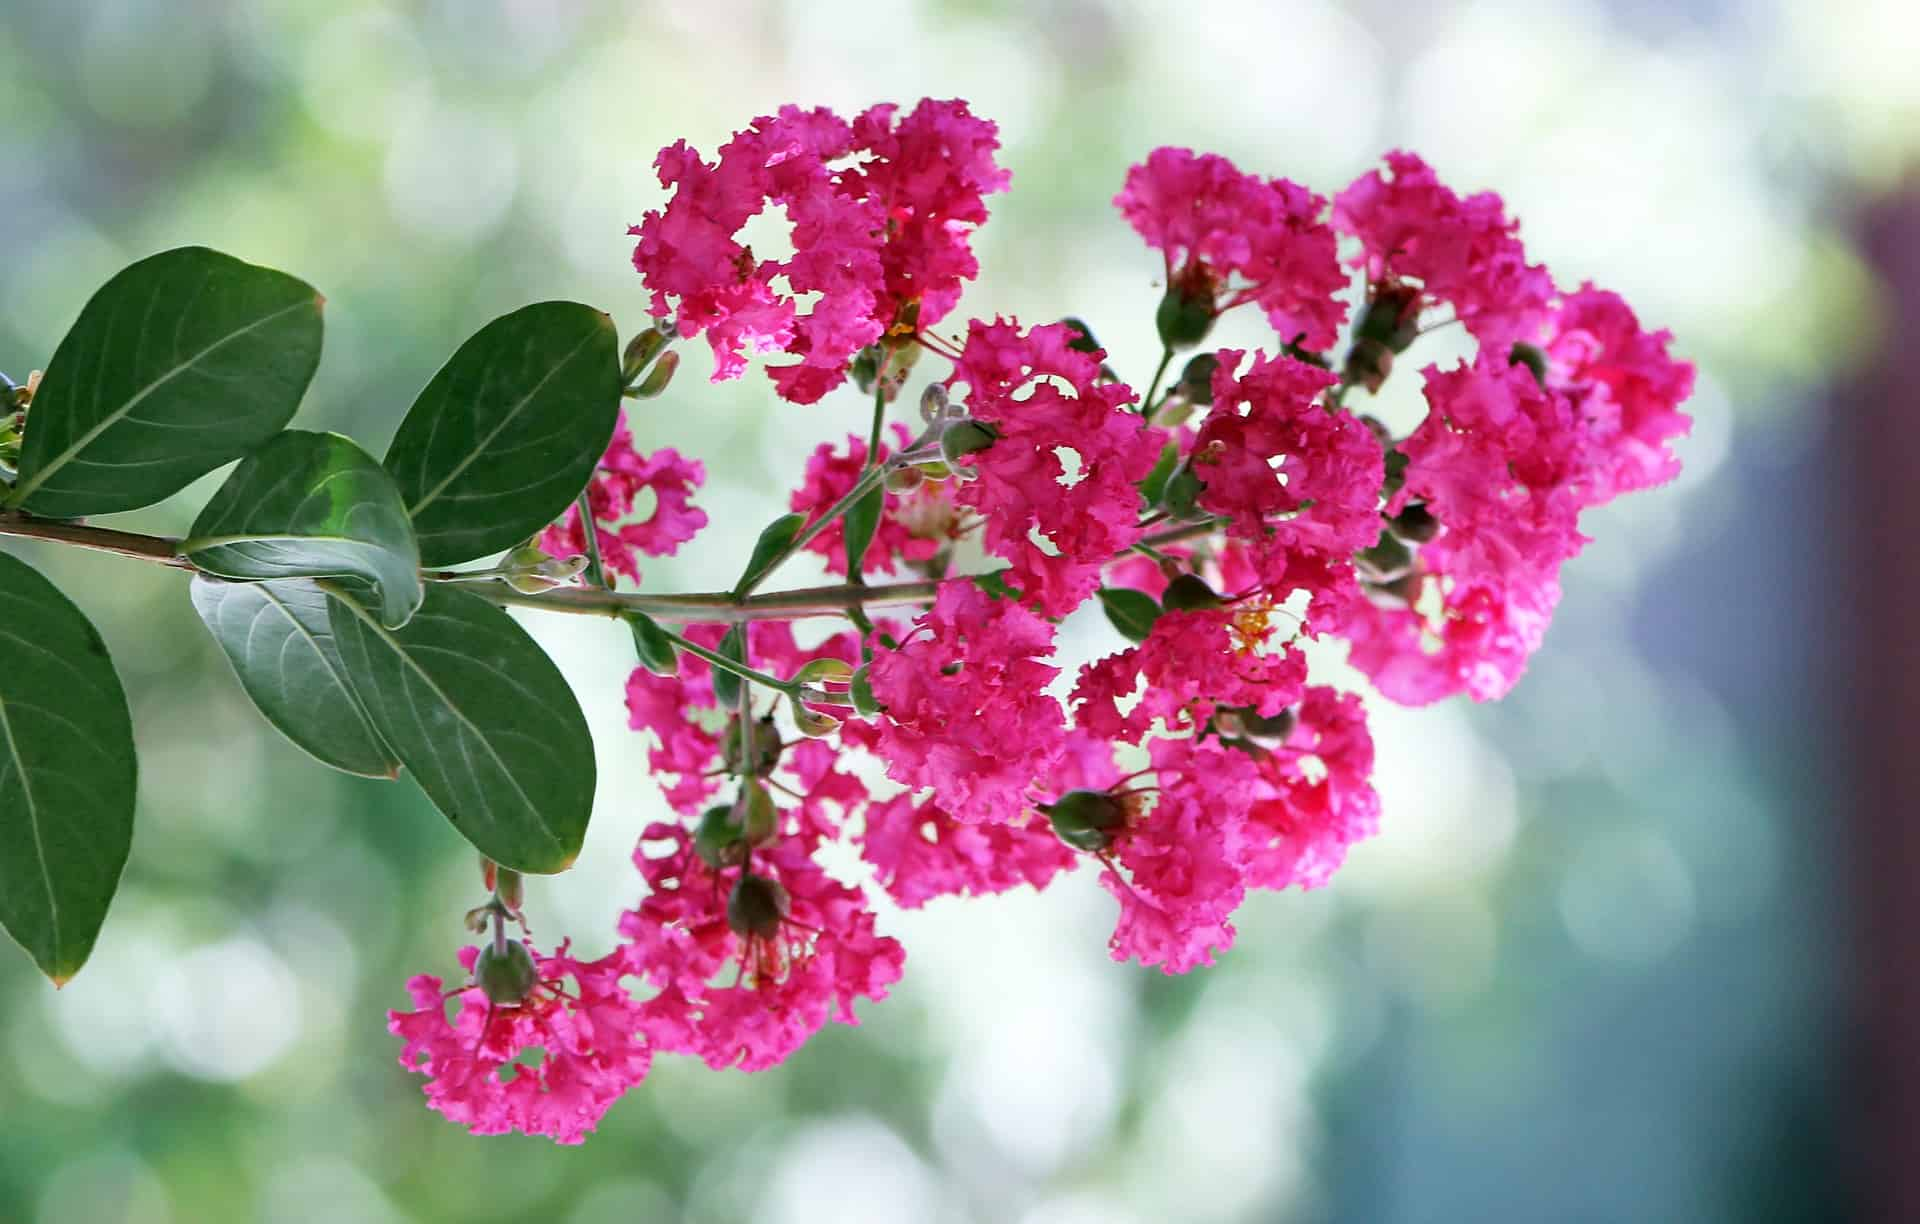 Best Fertilizer for Crepe Myrtles